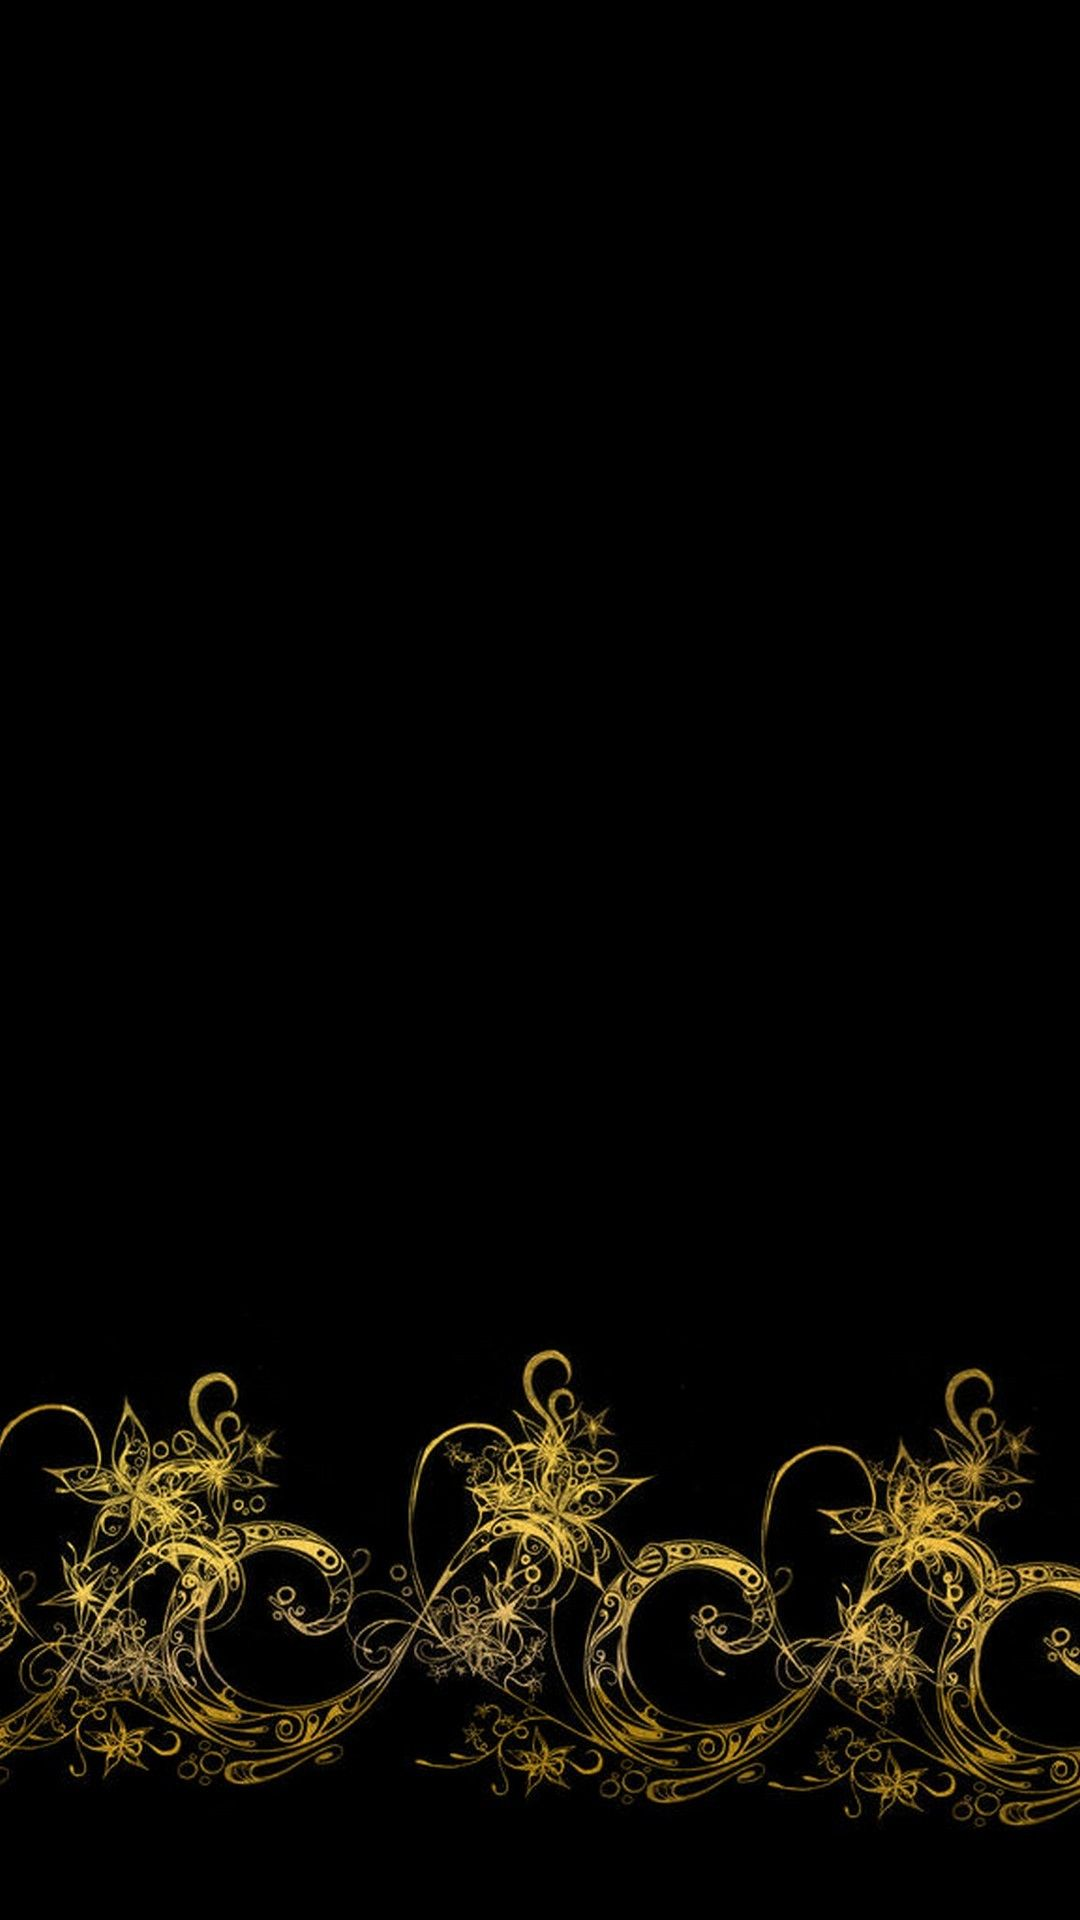 Pin By Zenzone On Iphone Wallpapers Black Wallpaper